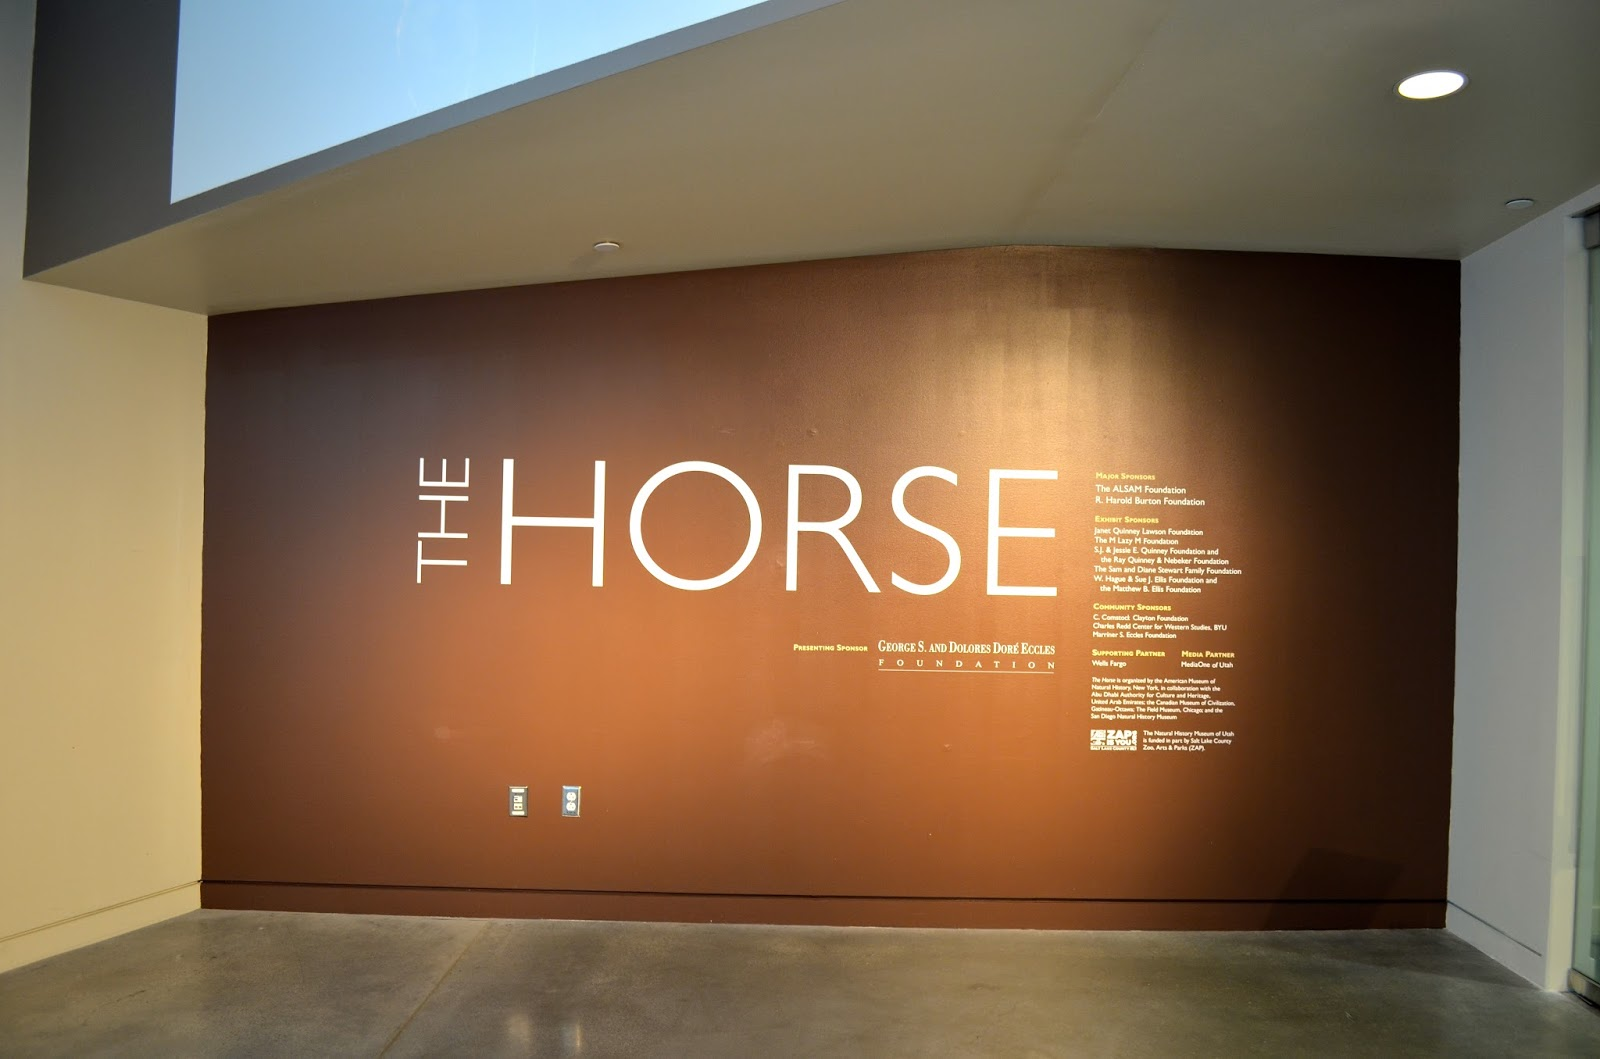 The Horse at the Natural History Museum of Utah